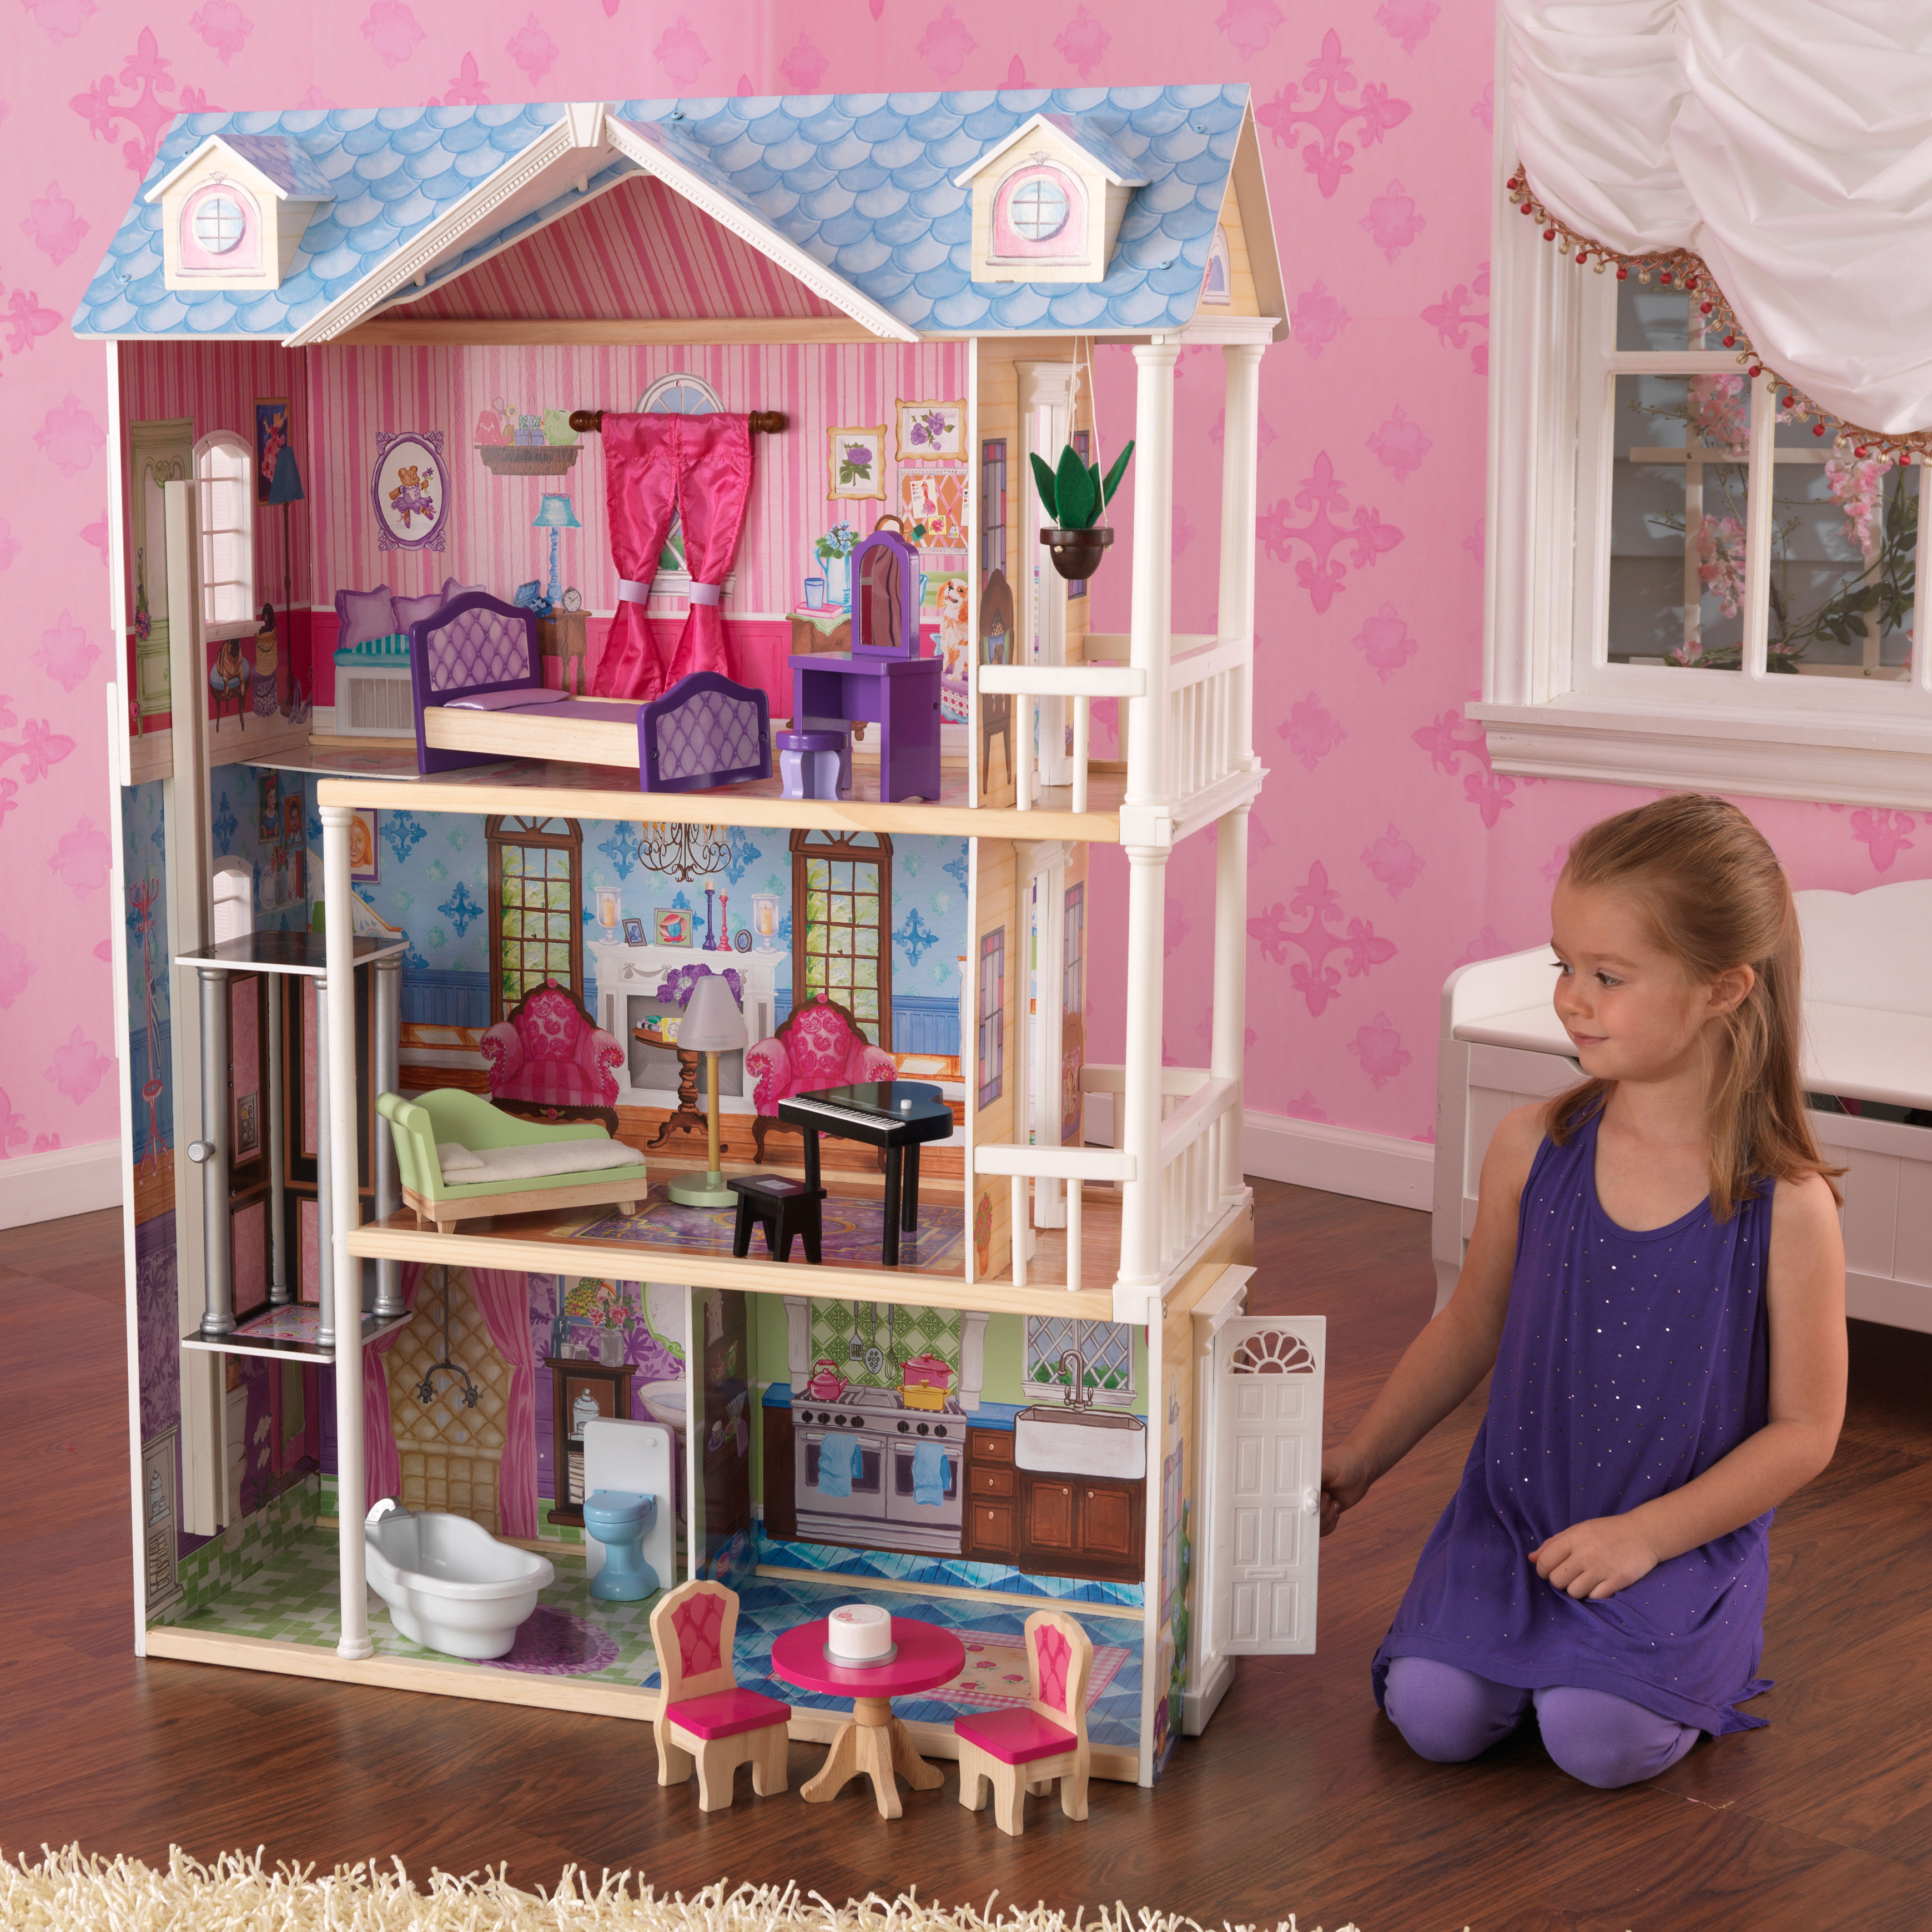 KidKraft My Dreamy Dollhouse with 14 accessories included by KidKraft